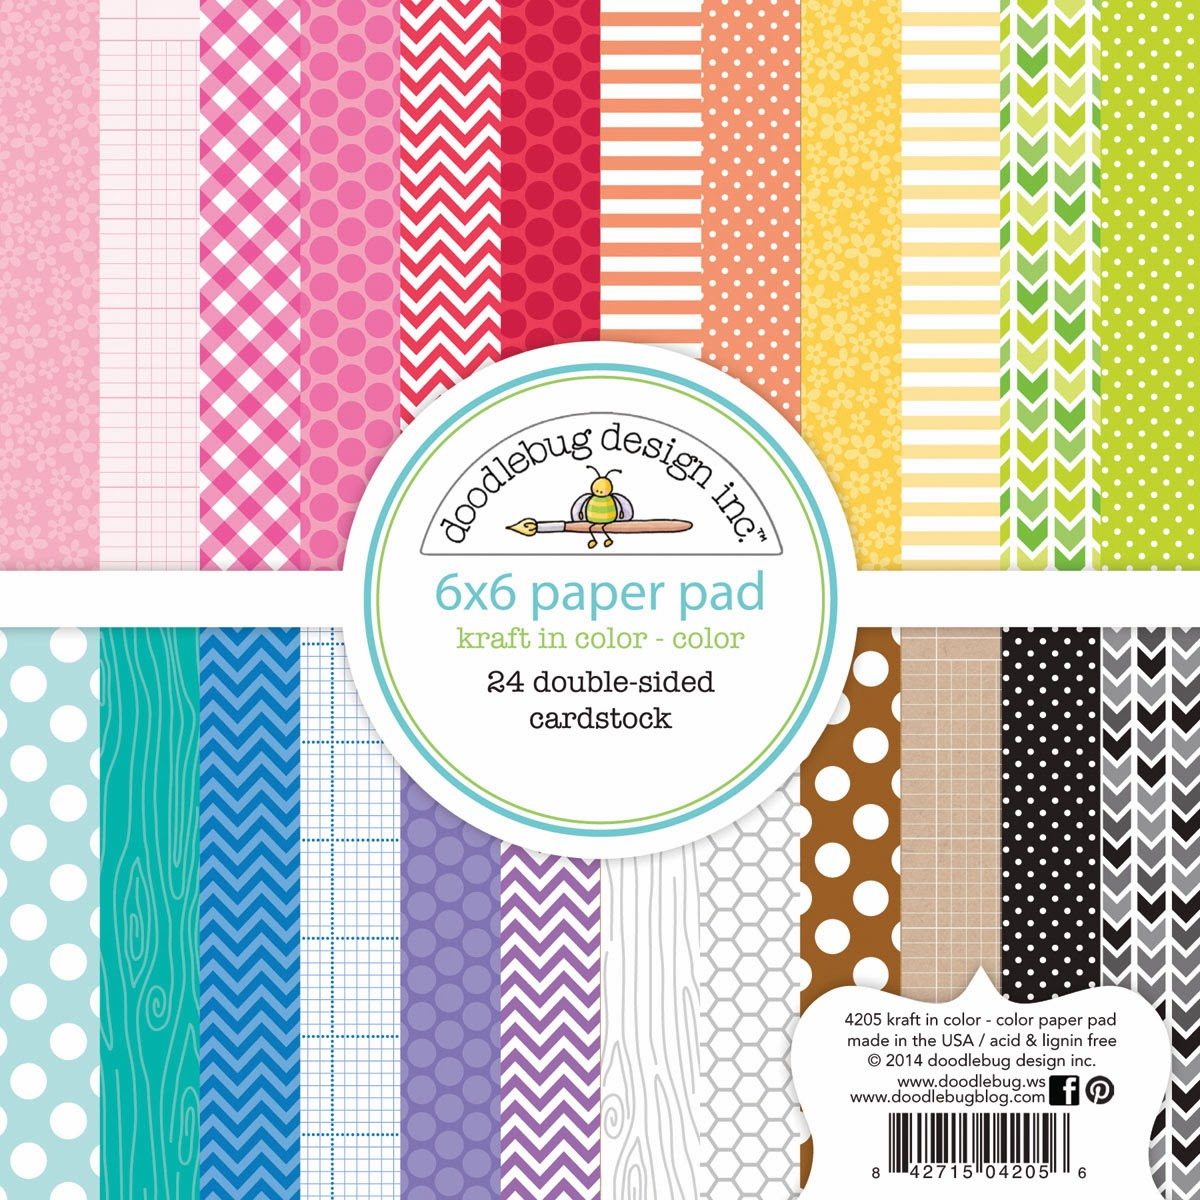 doodlebug design inc blog kraft in color collection launch party